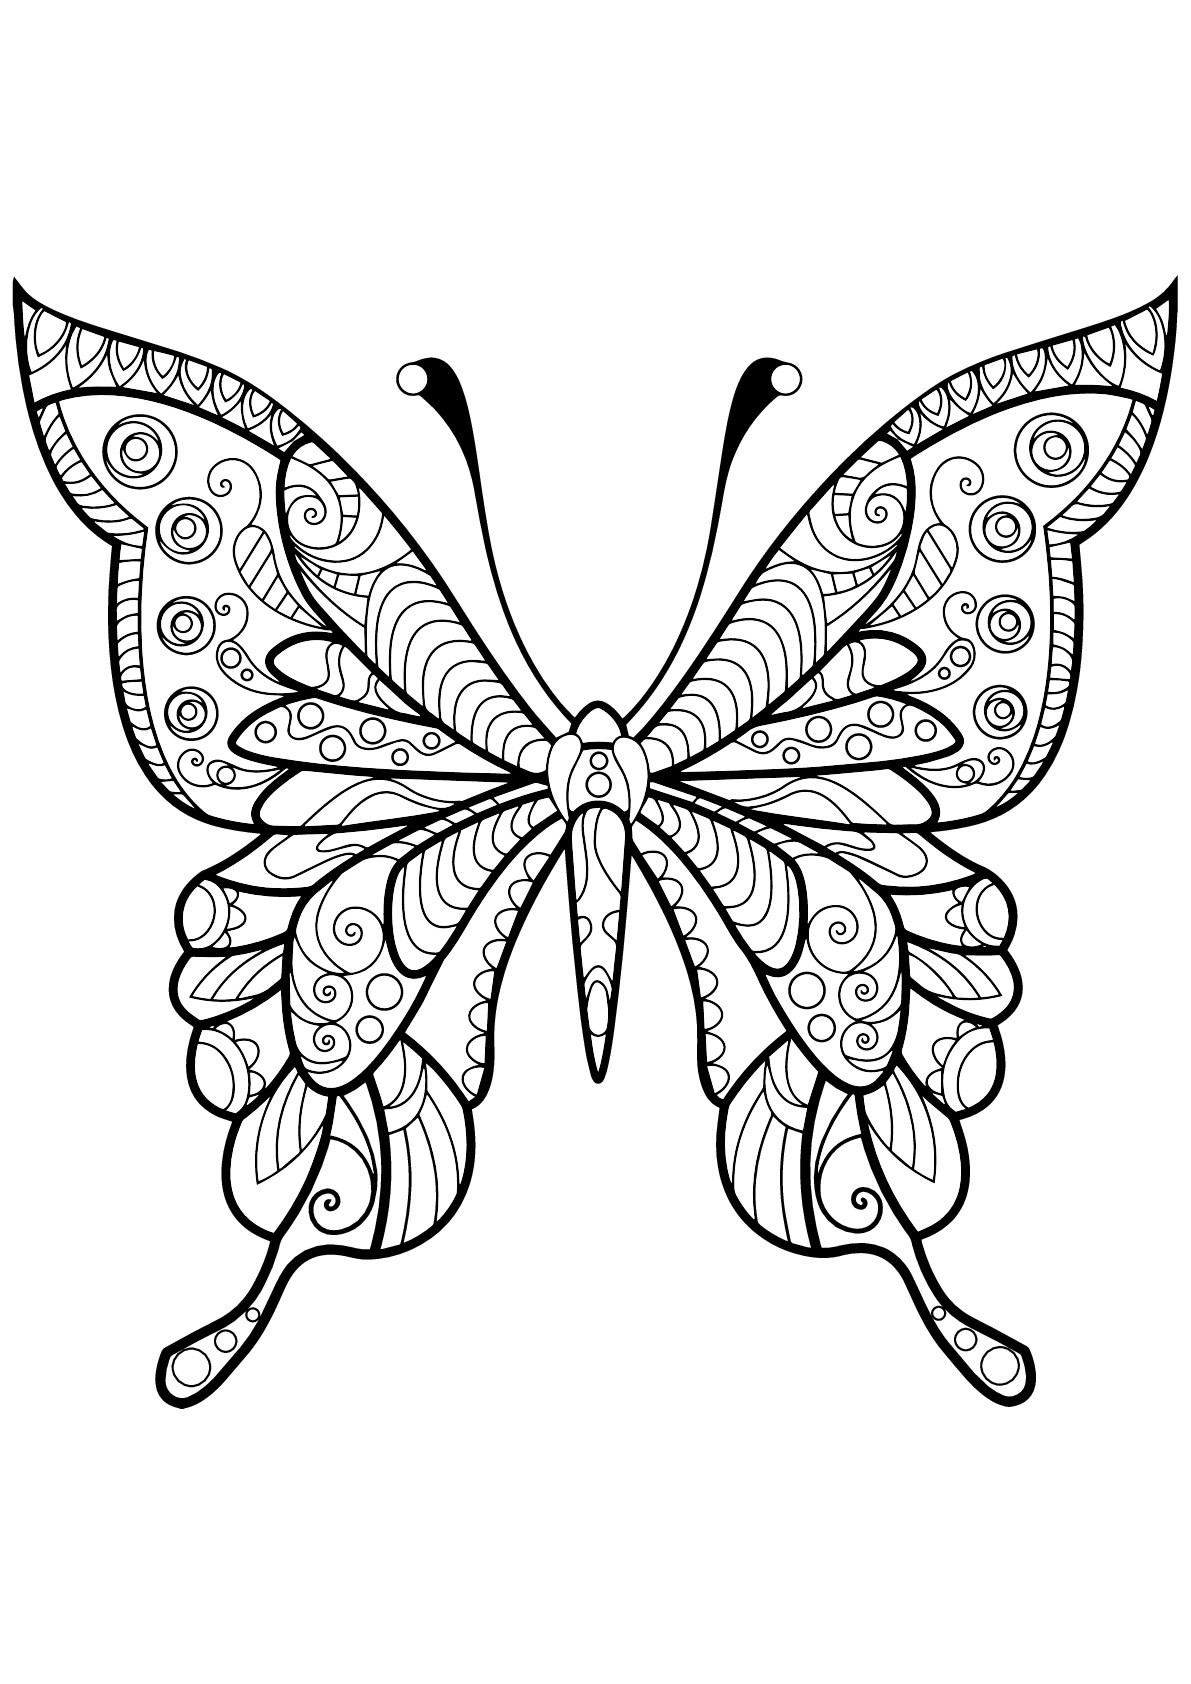 Butterflies Free To Color For Kids Butterflies Kids Coloring Pages